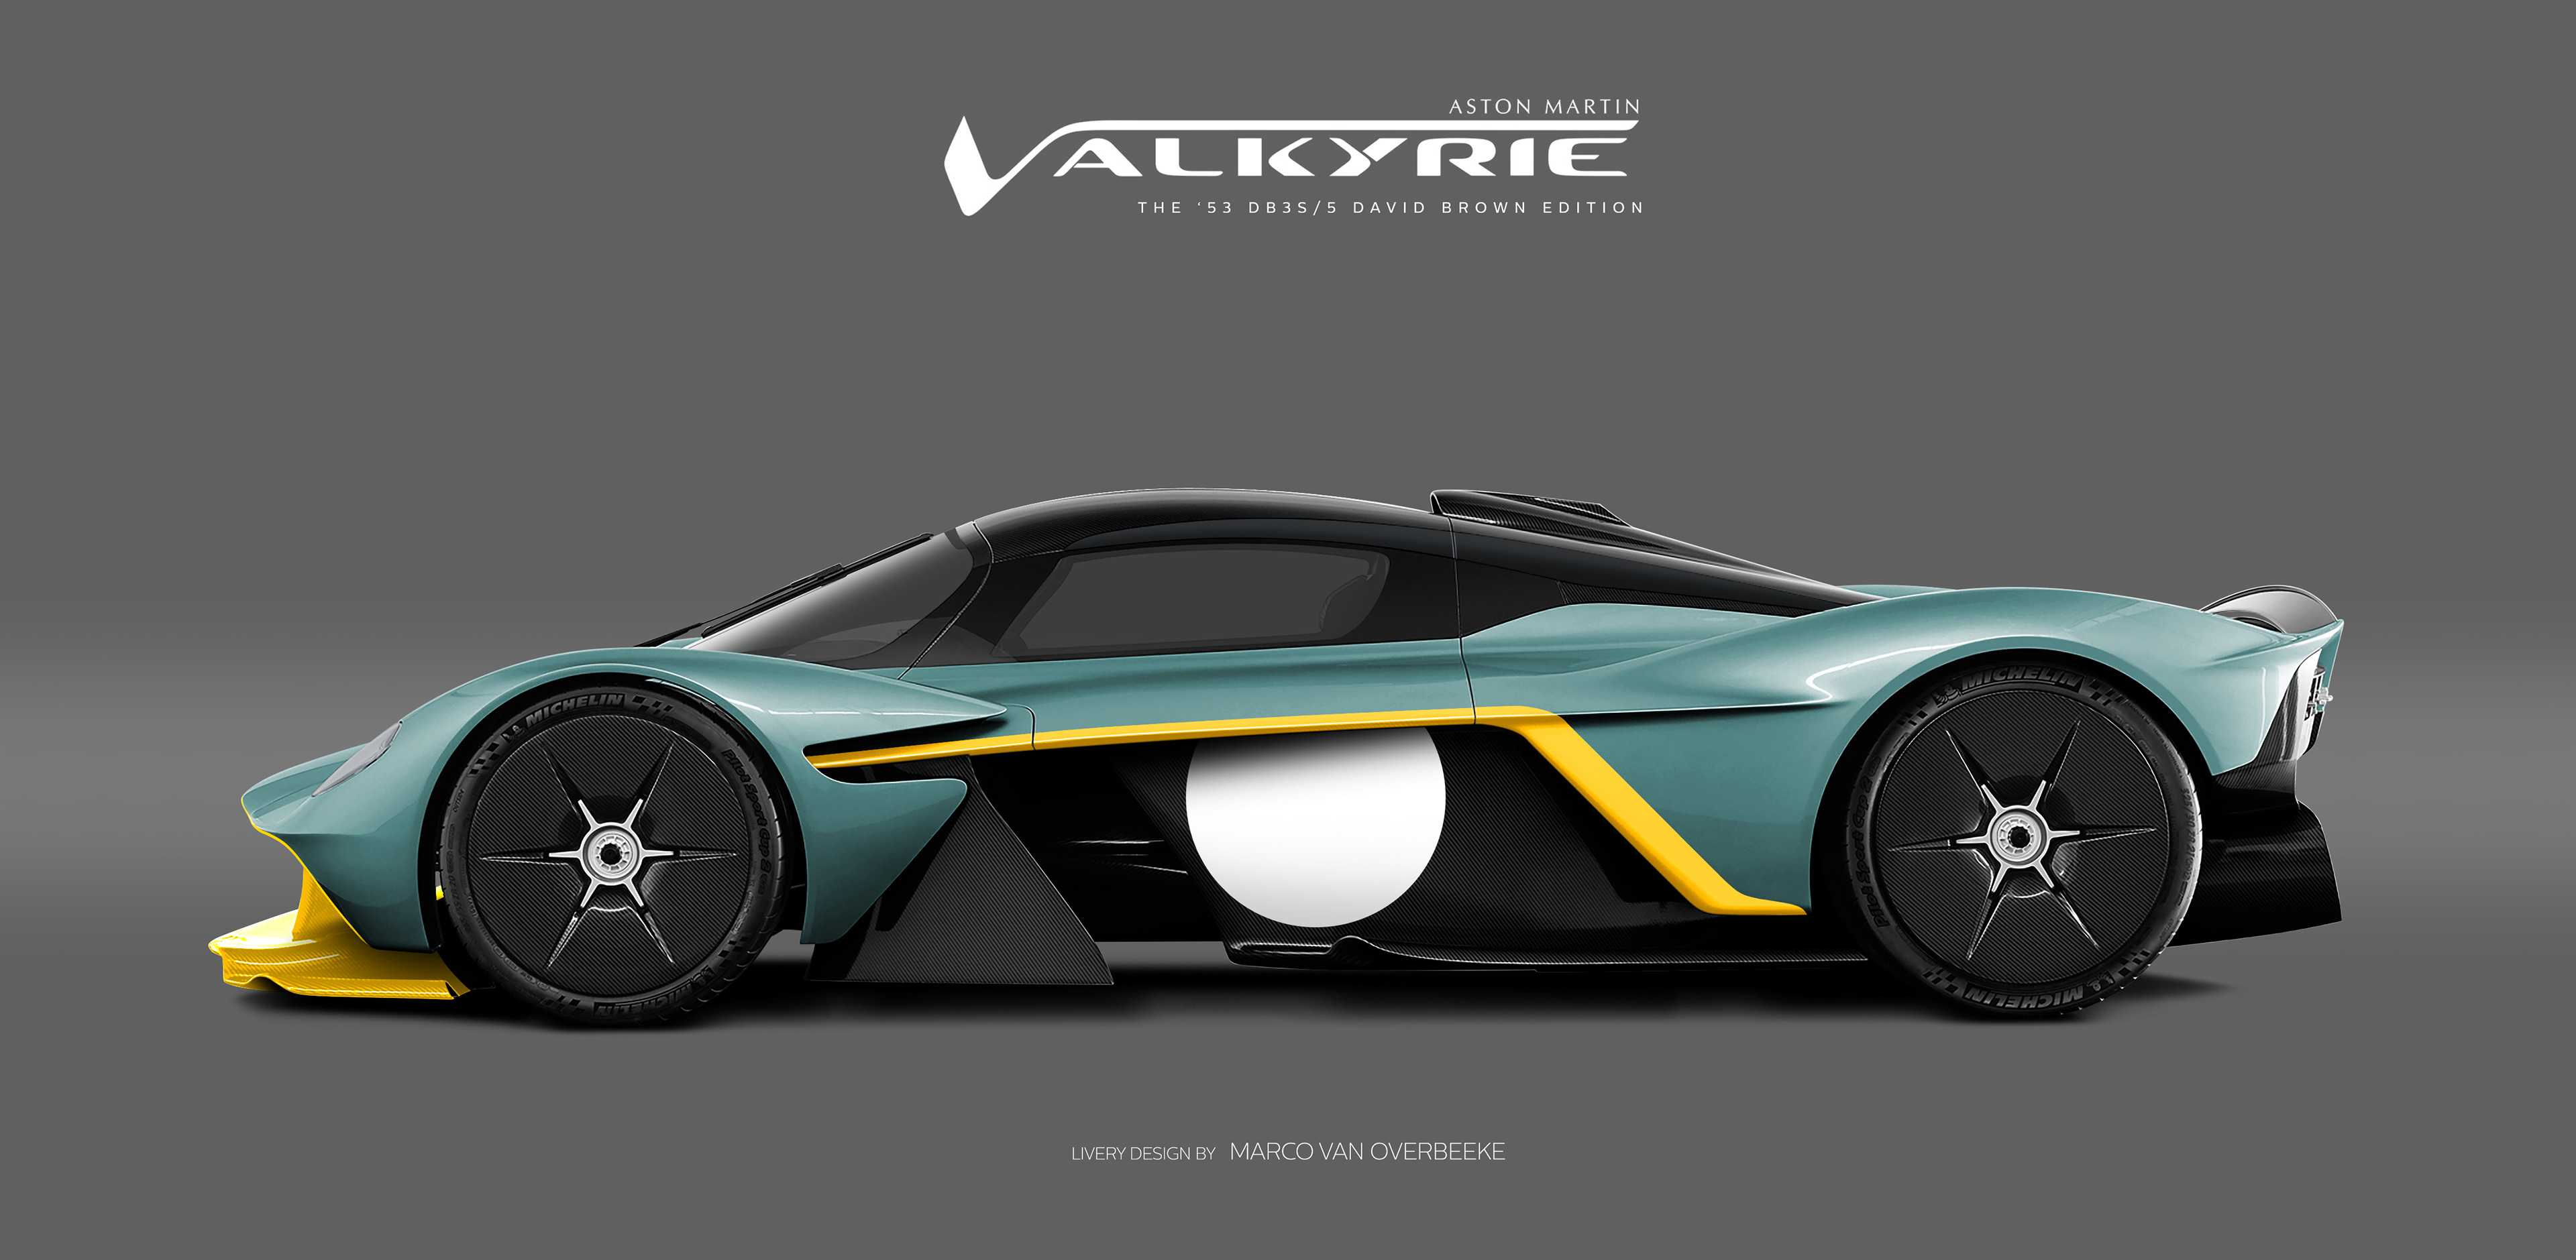 aston martin db5 british racing green with Aston Martin Valkyrie Livery Concepts Hommages on The Surprising Irish Connection To British Racing Green furthermore Aston Martin Valkyrie Livery Concepts Hommages further Bmc Paint moreover 43 as well Tastefully Tuned Aston Martin Rapide By 168 Motoring.